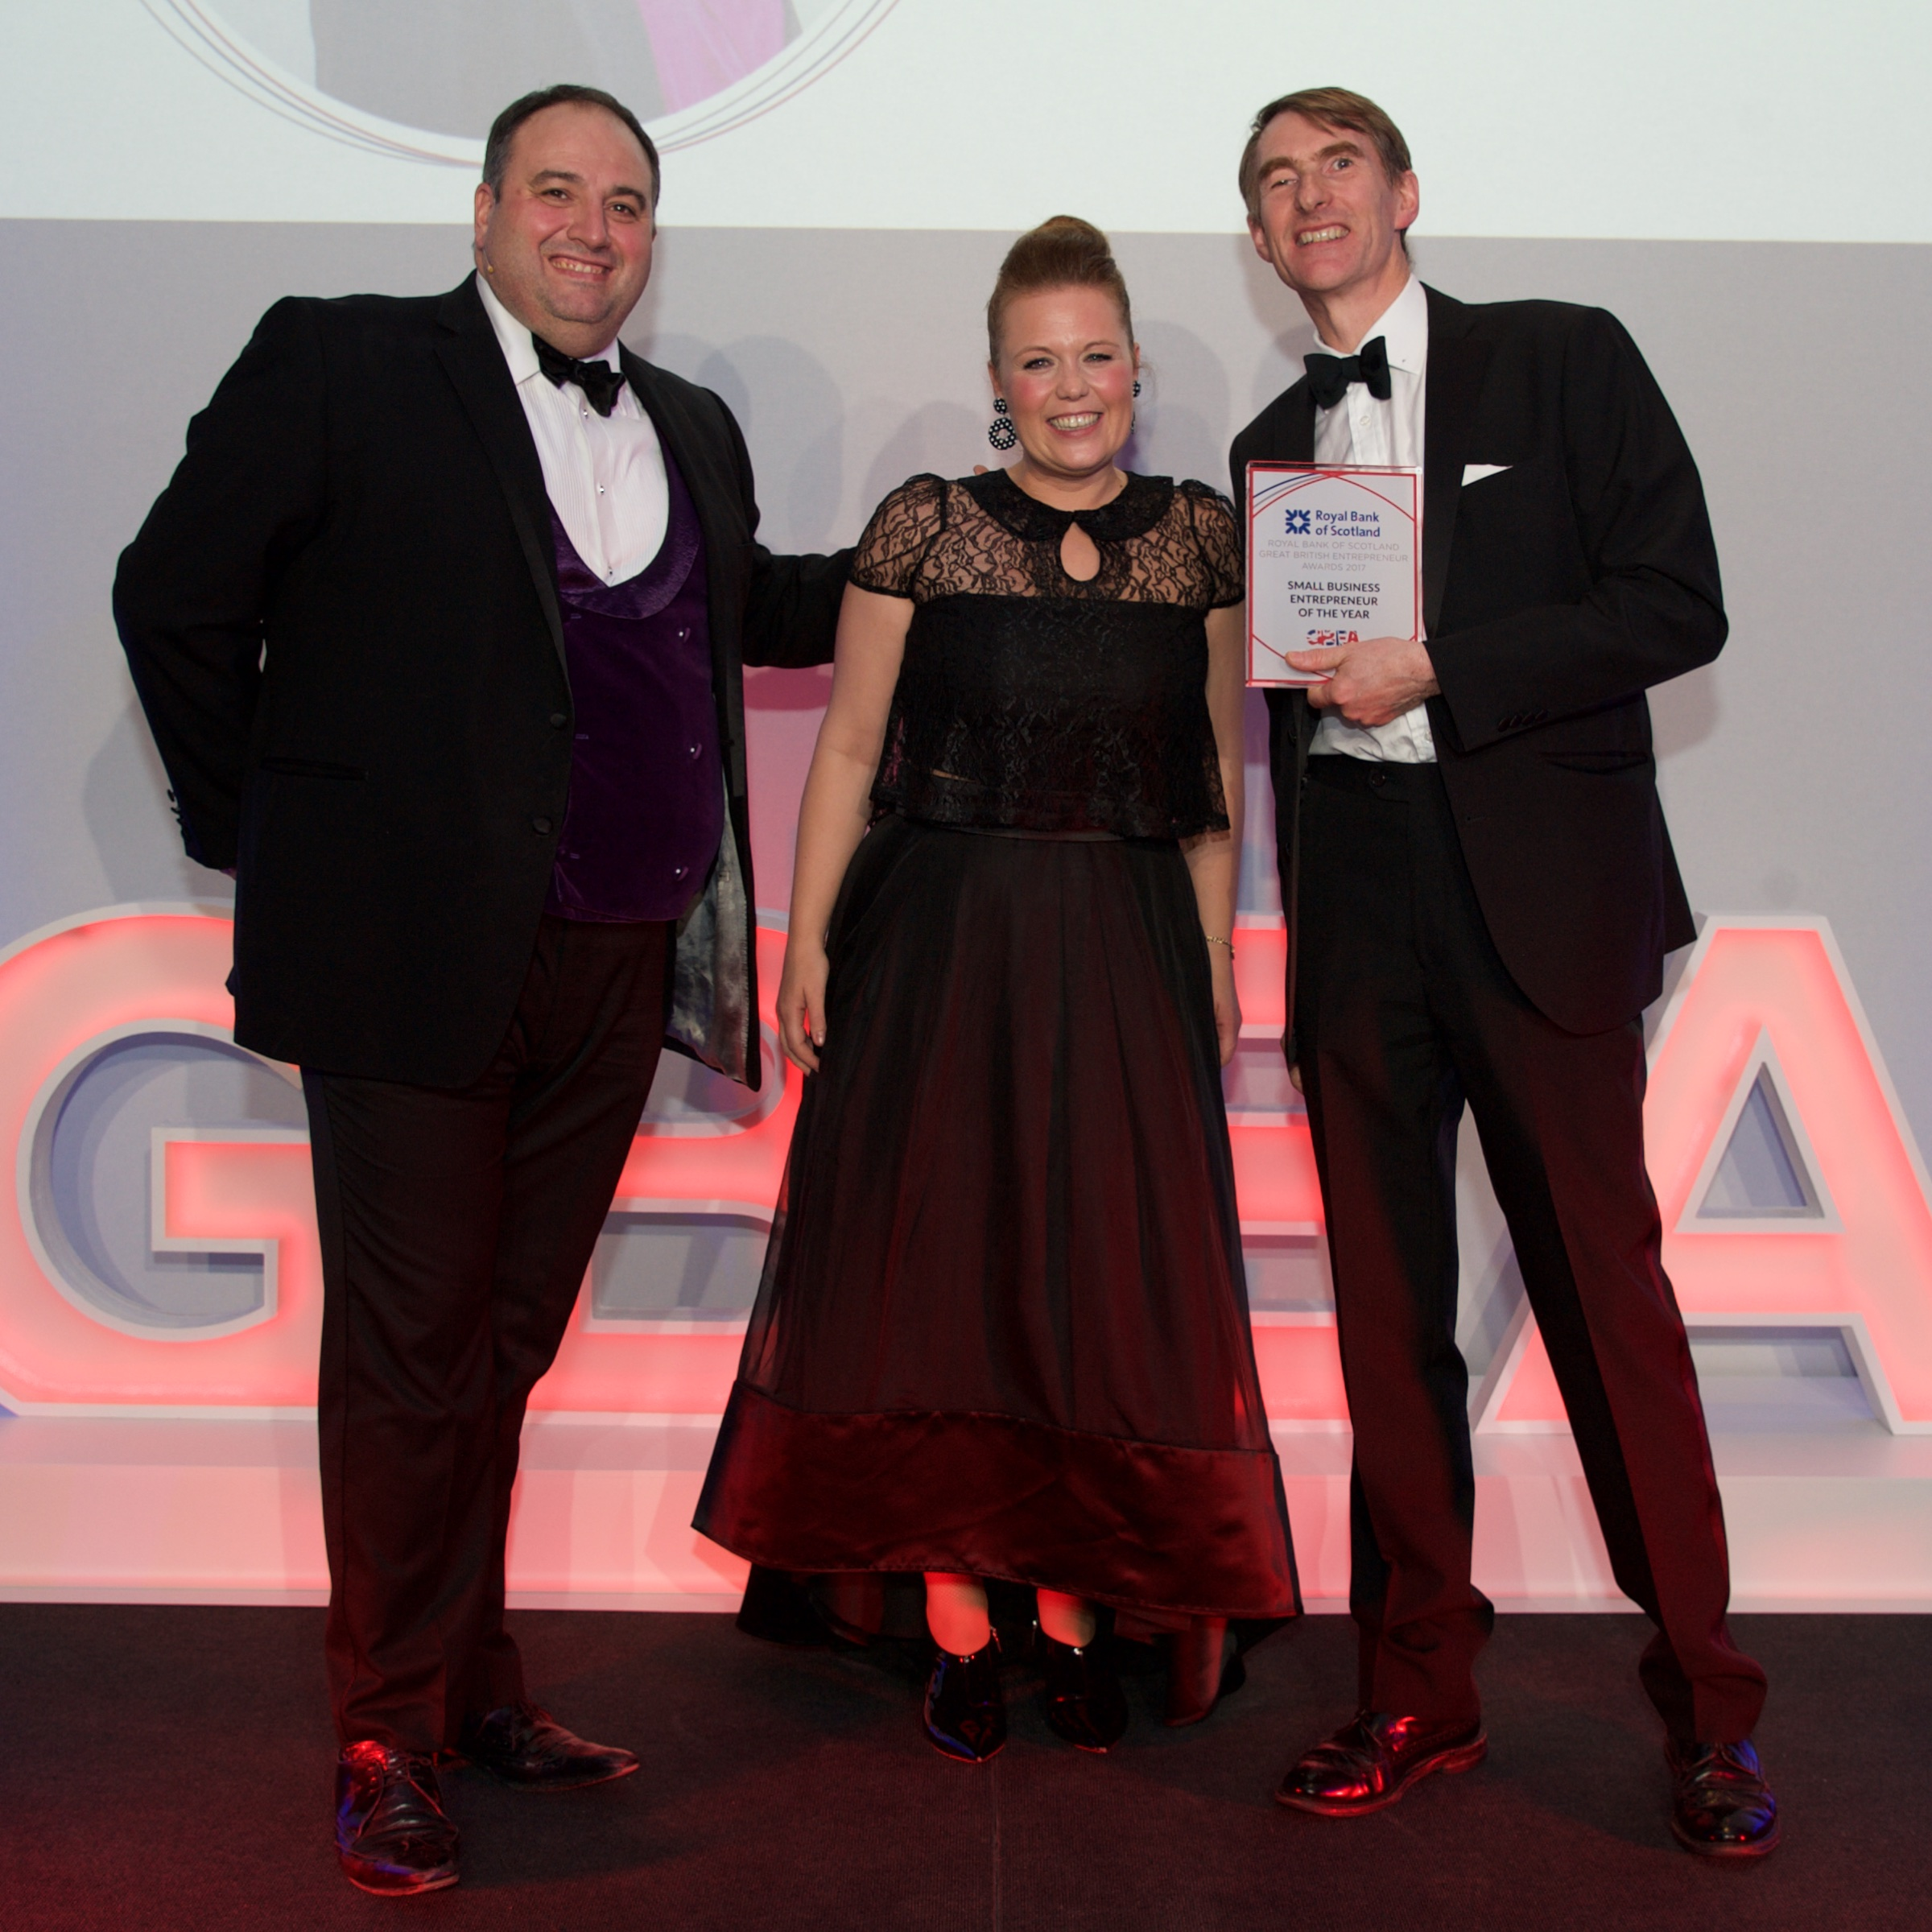 Leah Hutcheon_Small Business of the Year_RBS GB Entrepreneur Awards